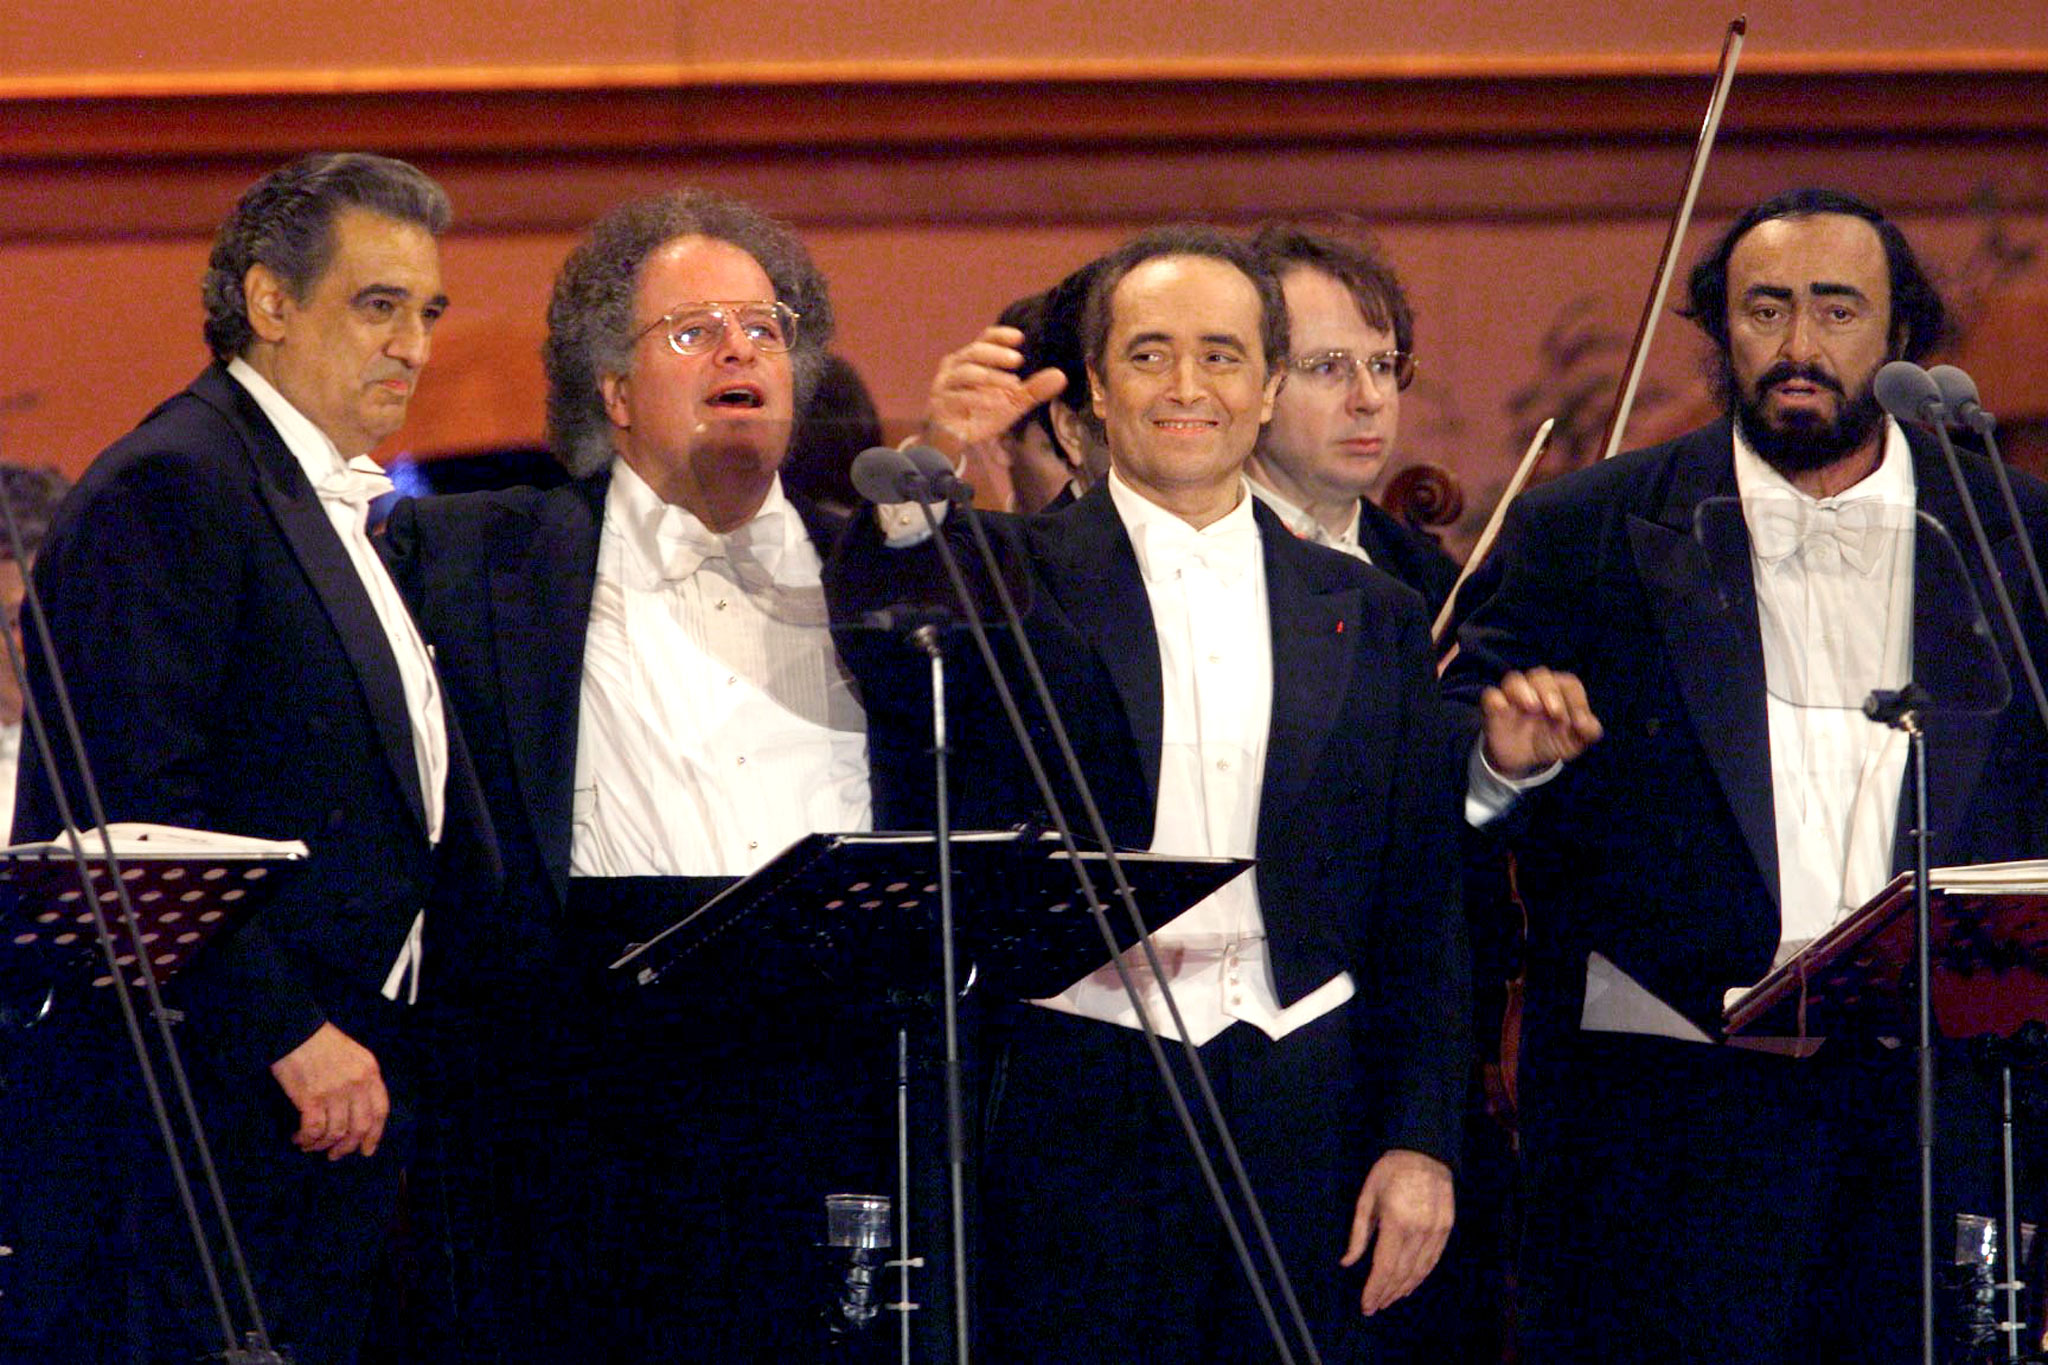 World famous operatic trio Placido Domingo (L) Jose Carreras (3rd L) Luciano Pavarotti (R) salute with conductor James Levine (2nd L) after their concert which kicks off the celebrations for the Soccer World Cup final weekend in front of the Eiffel tower July 10.  PW/AA - RP1DRIFYEQAD